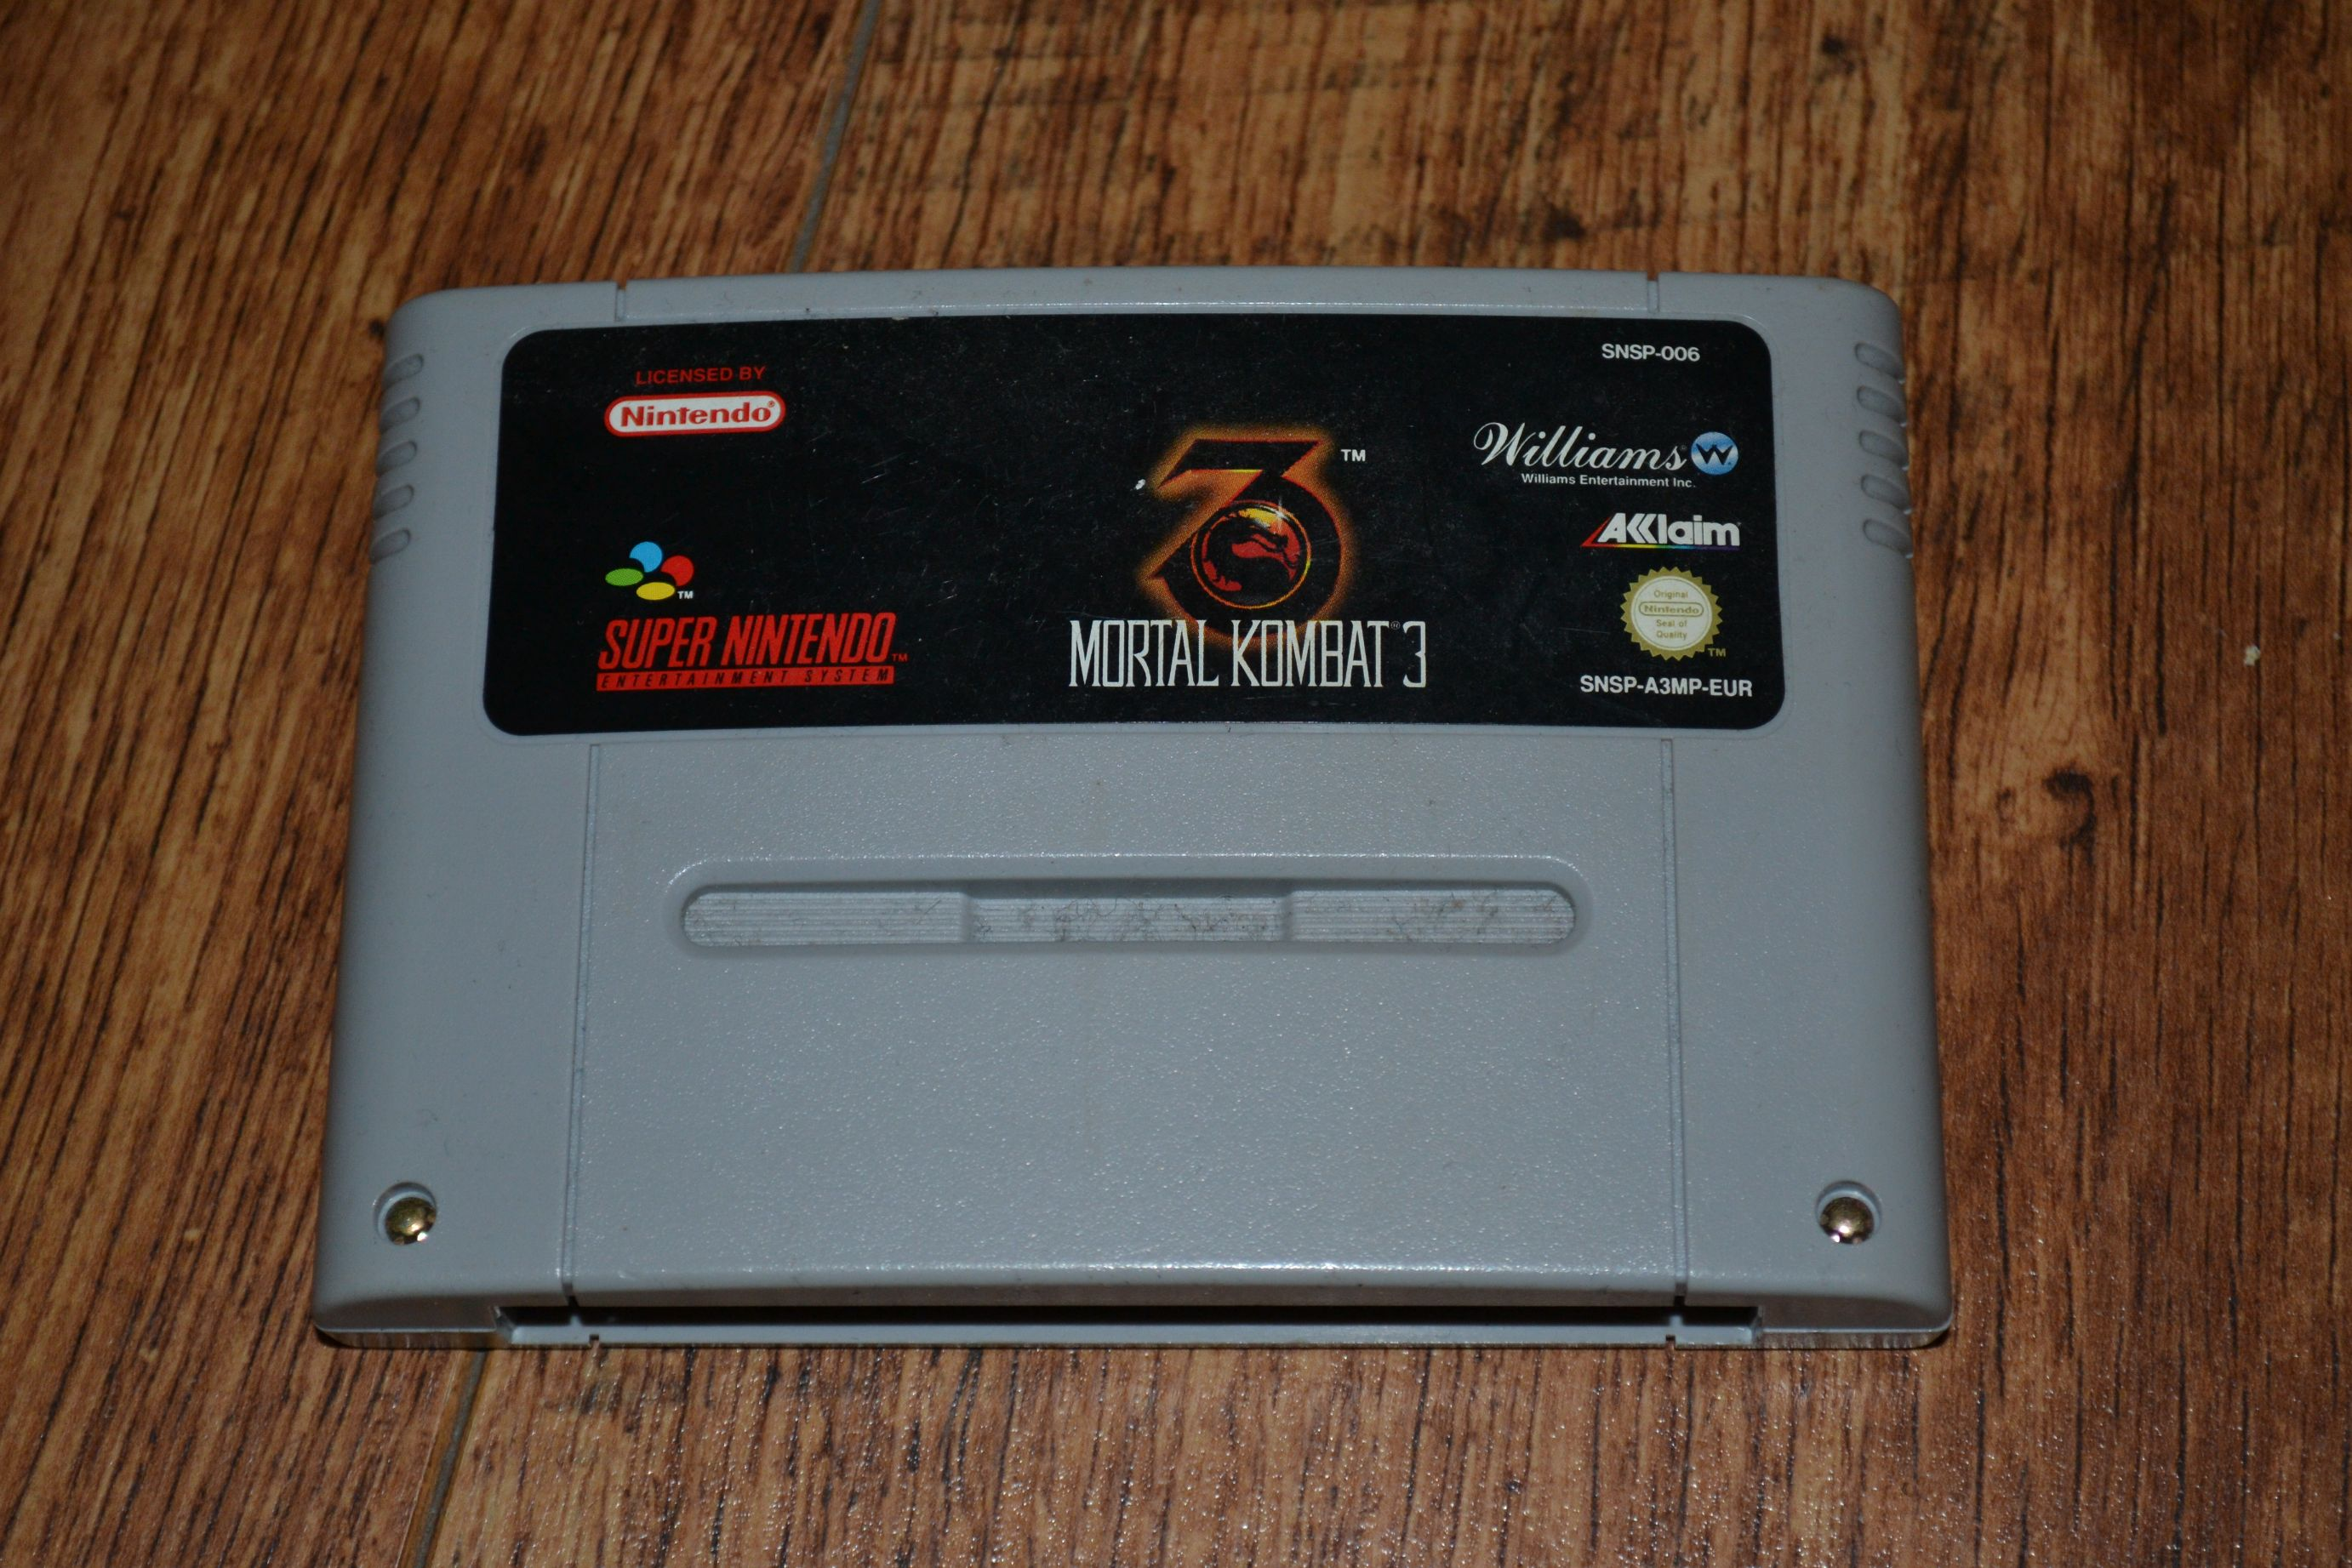 Gaming in Retrospect II: Mortal Kombat 3 on SNES